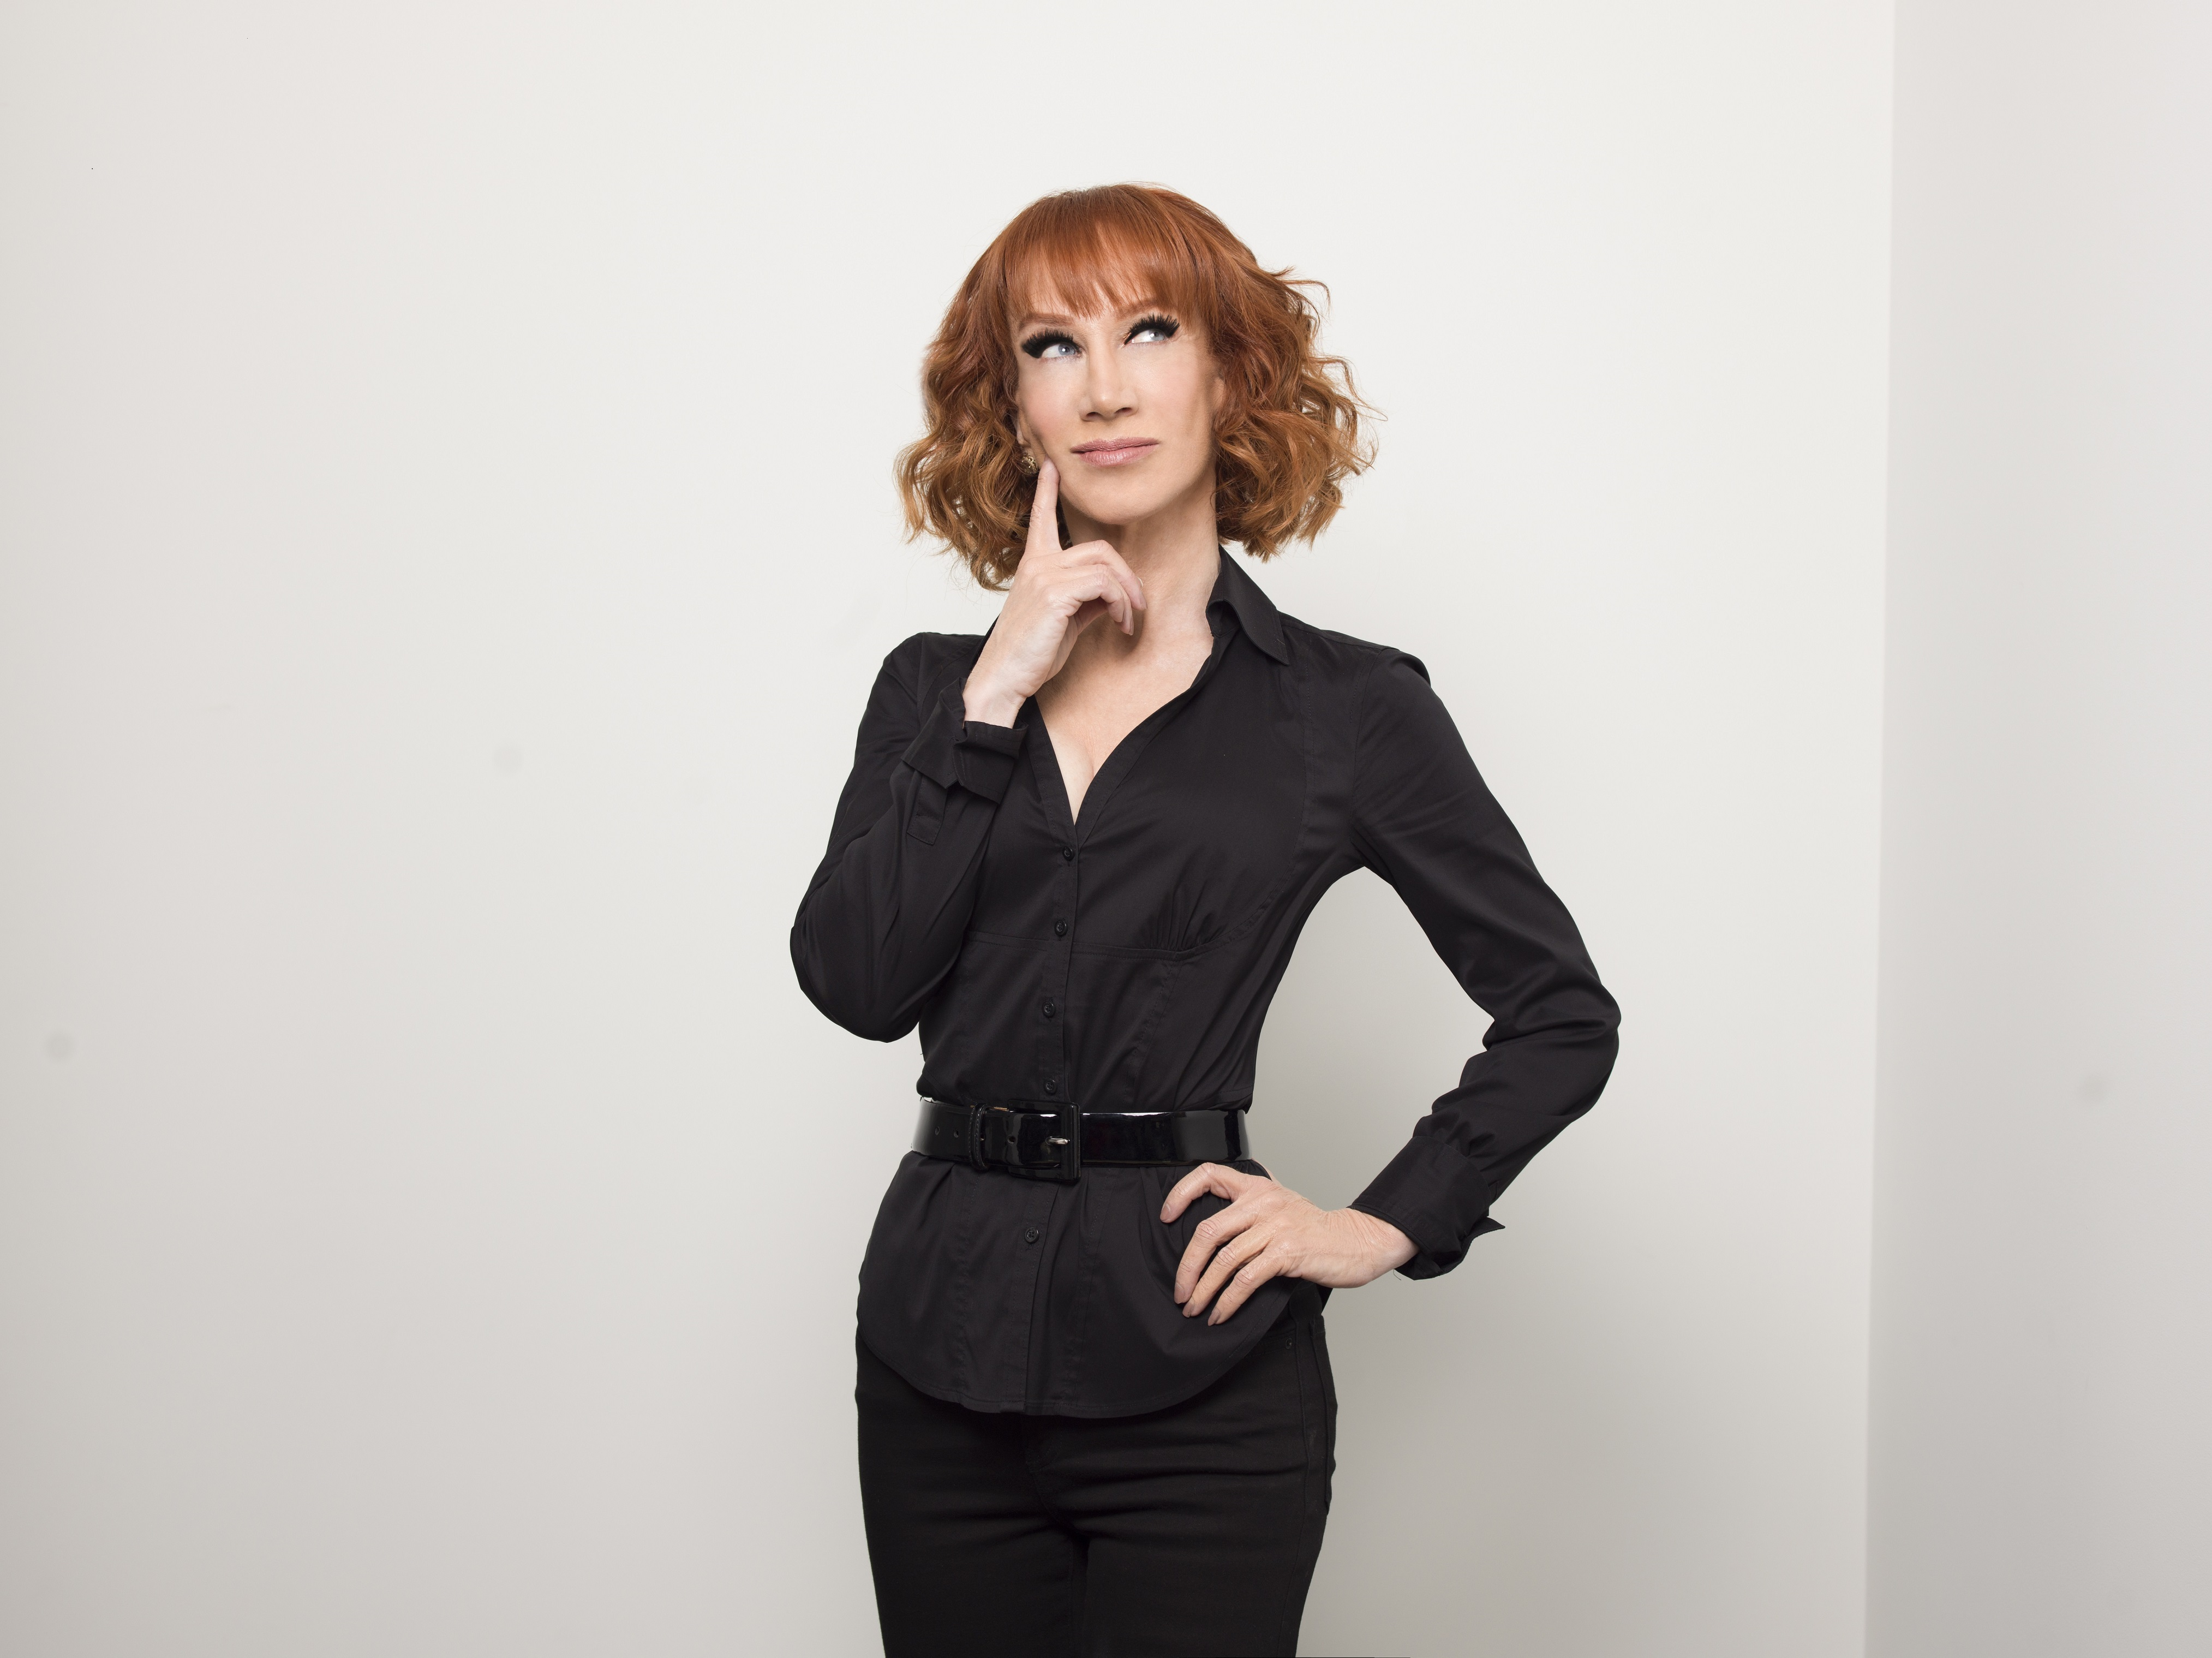 Who is kathy griffin dating now 3